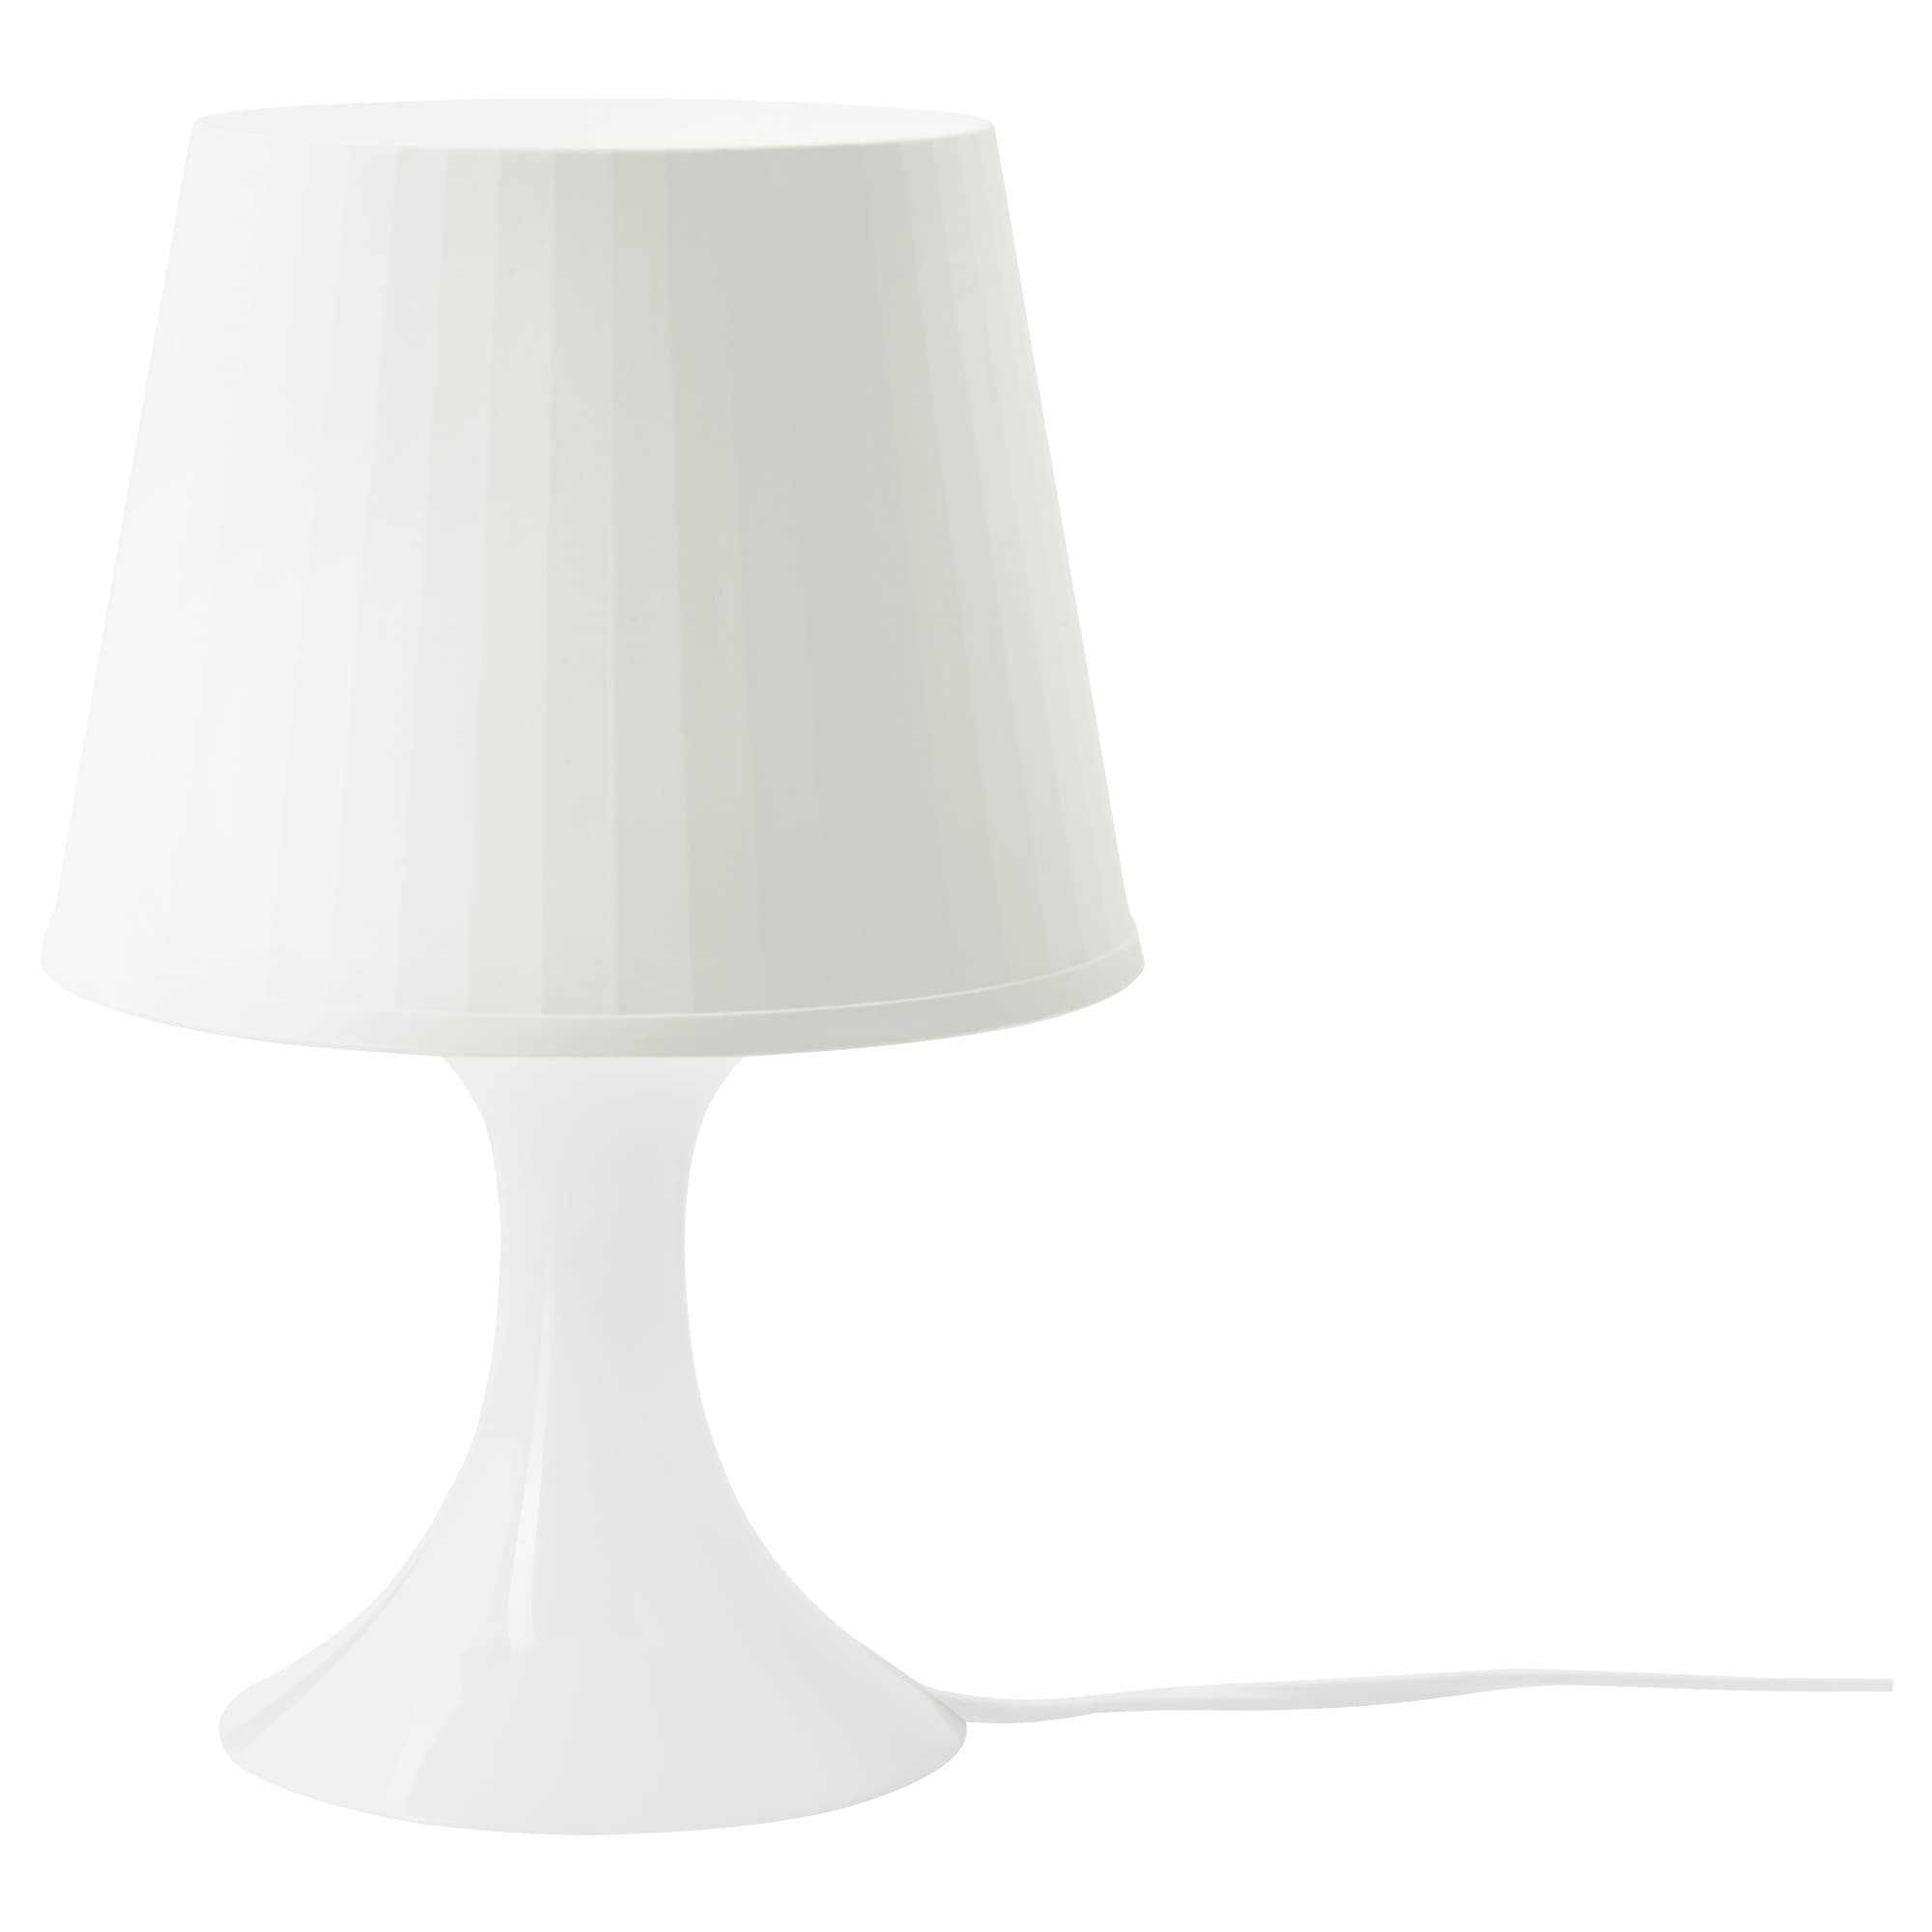 Best ideas about White Desk Lamp . Save or Pin LAMPAN Table lamp White IKEA Now.